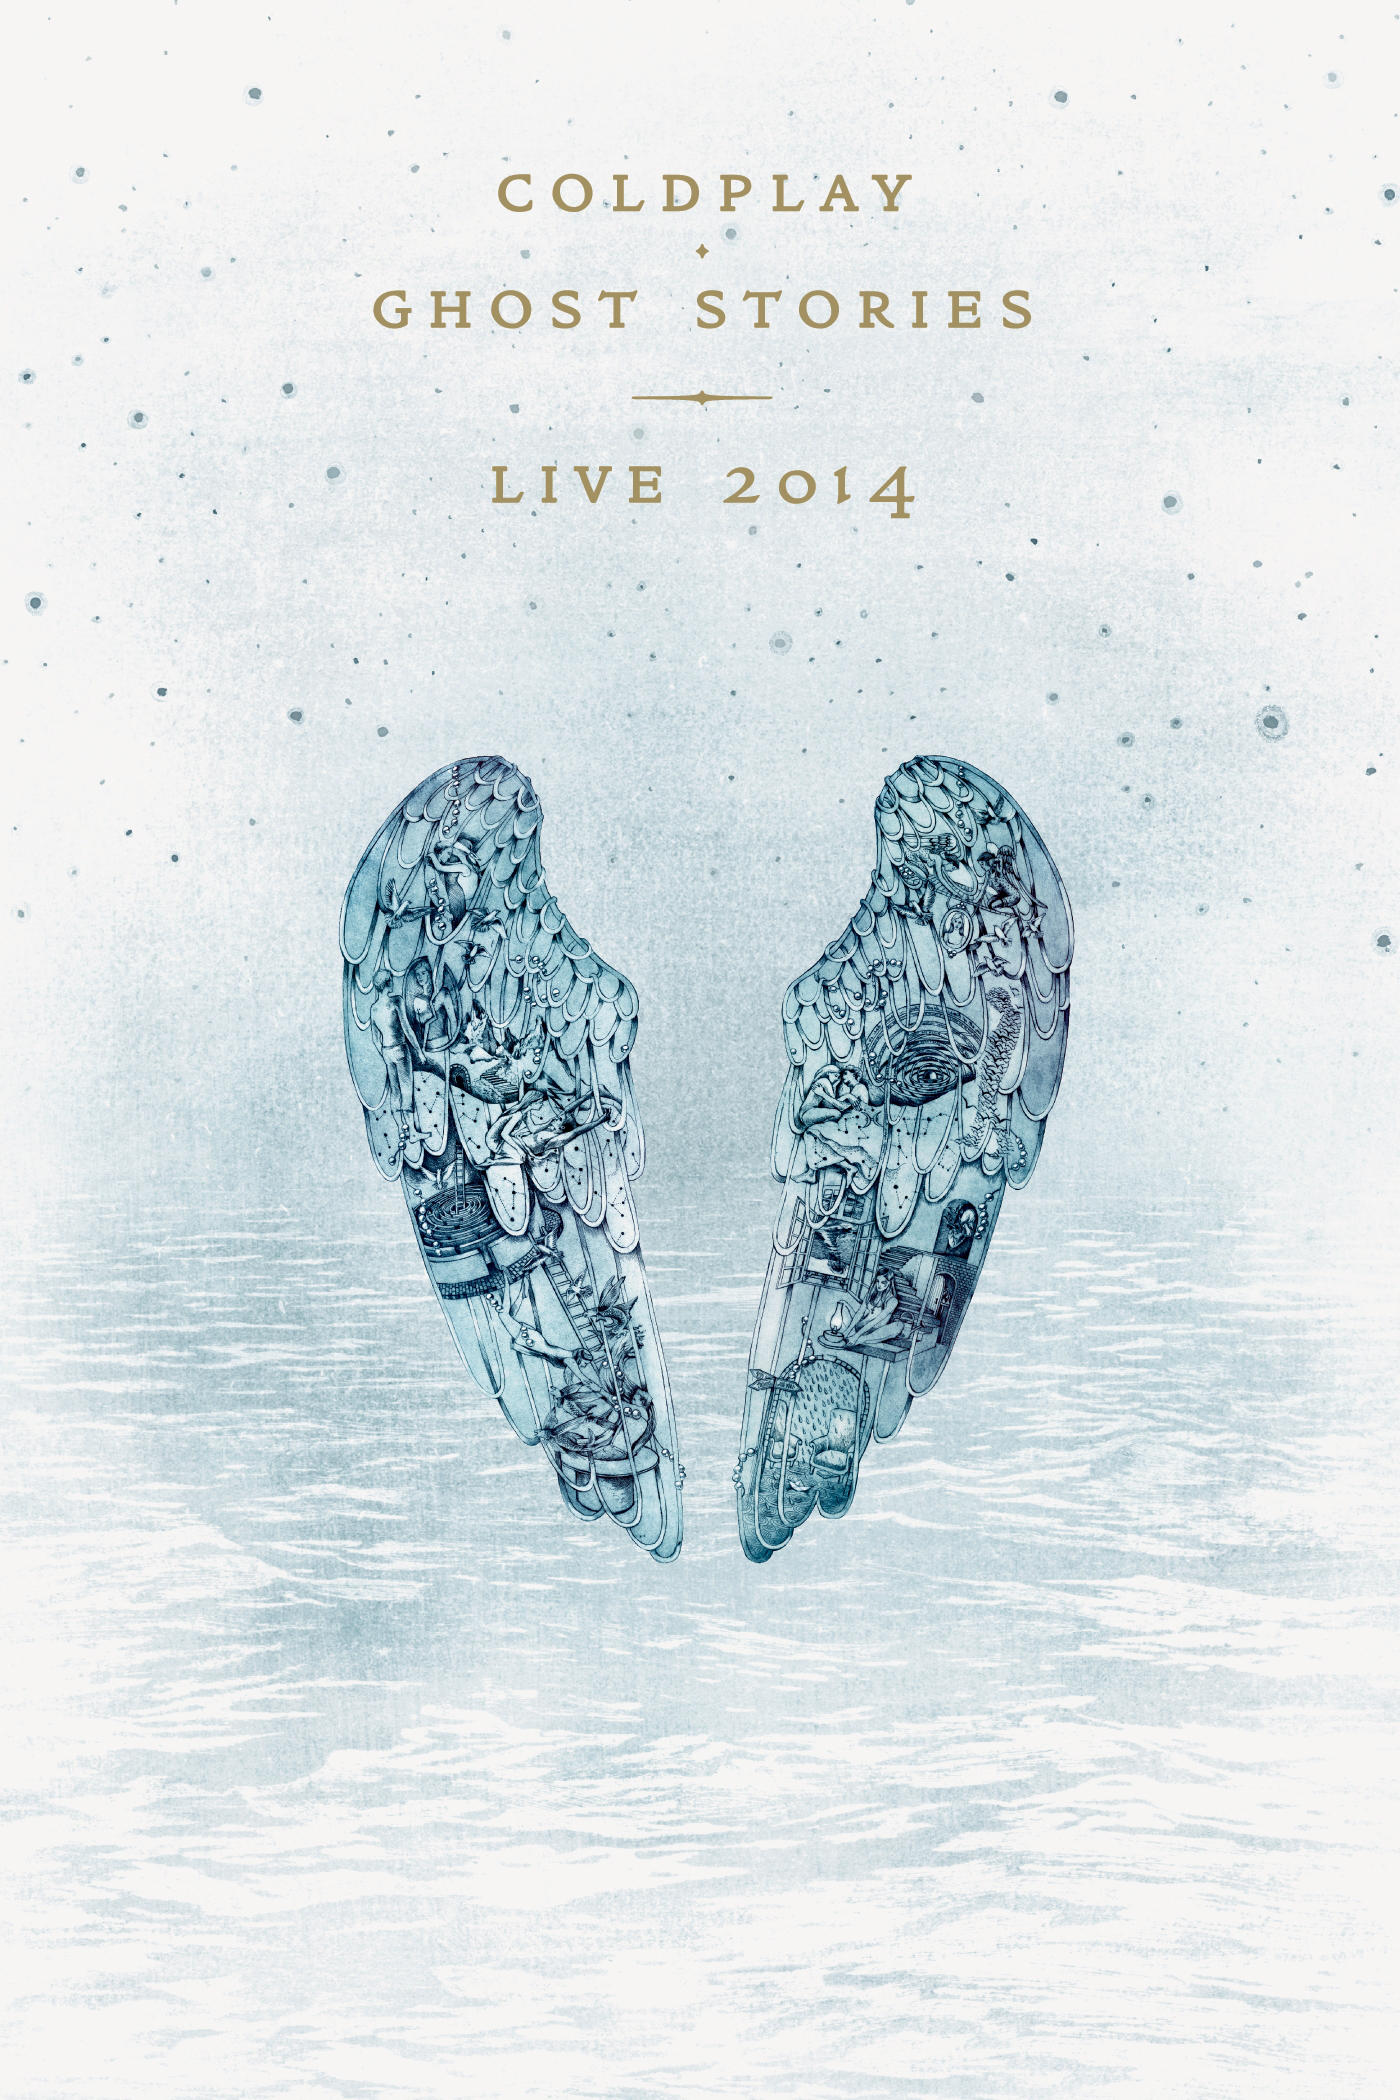 Coldplay: Ghost Stories Live 2014 [iTunes Movie Full HD]